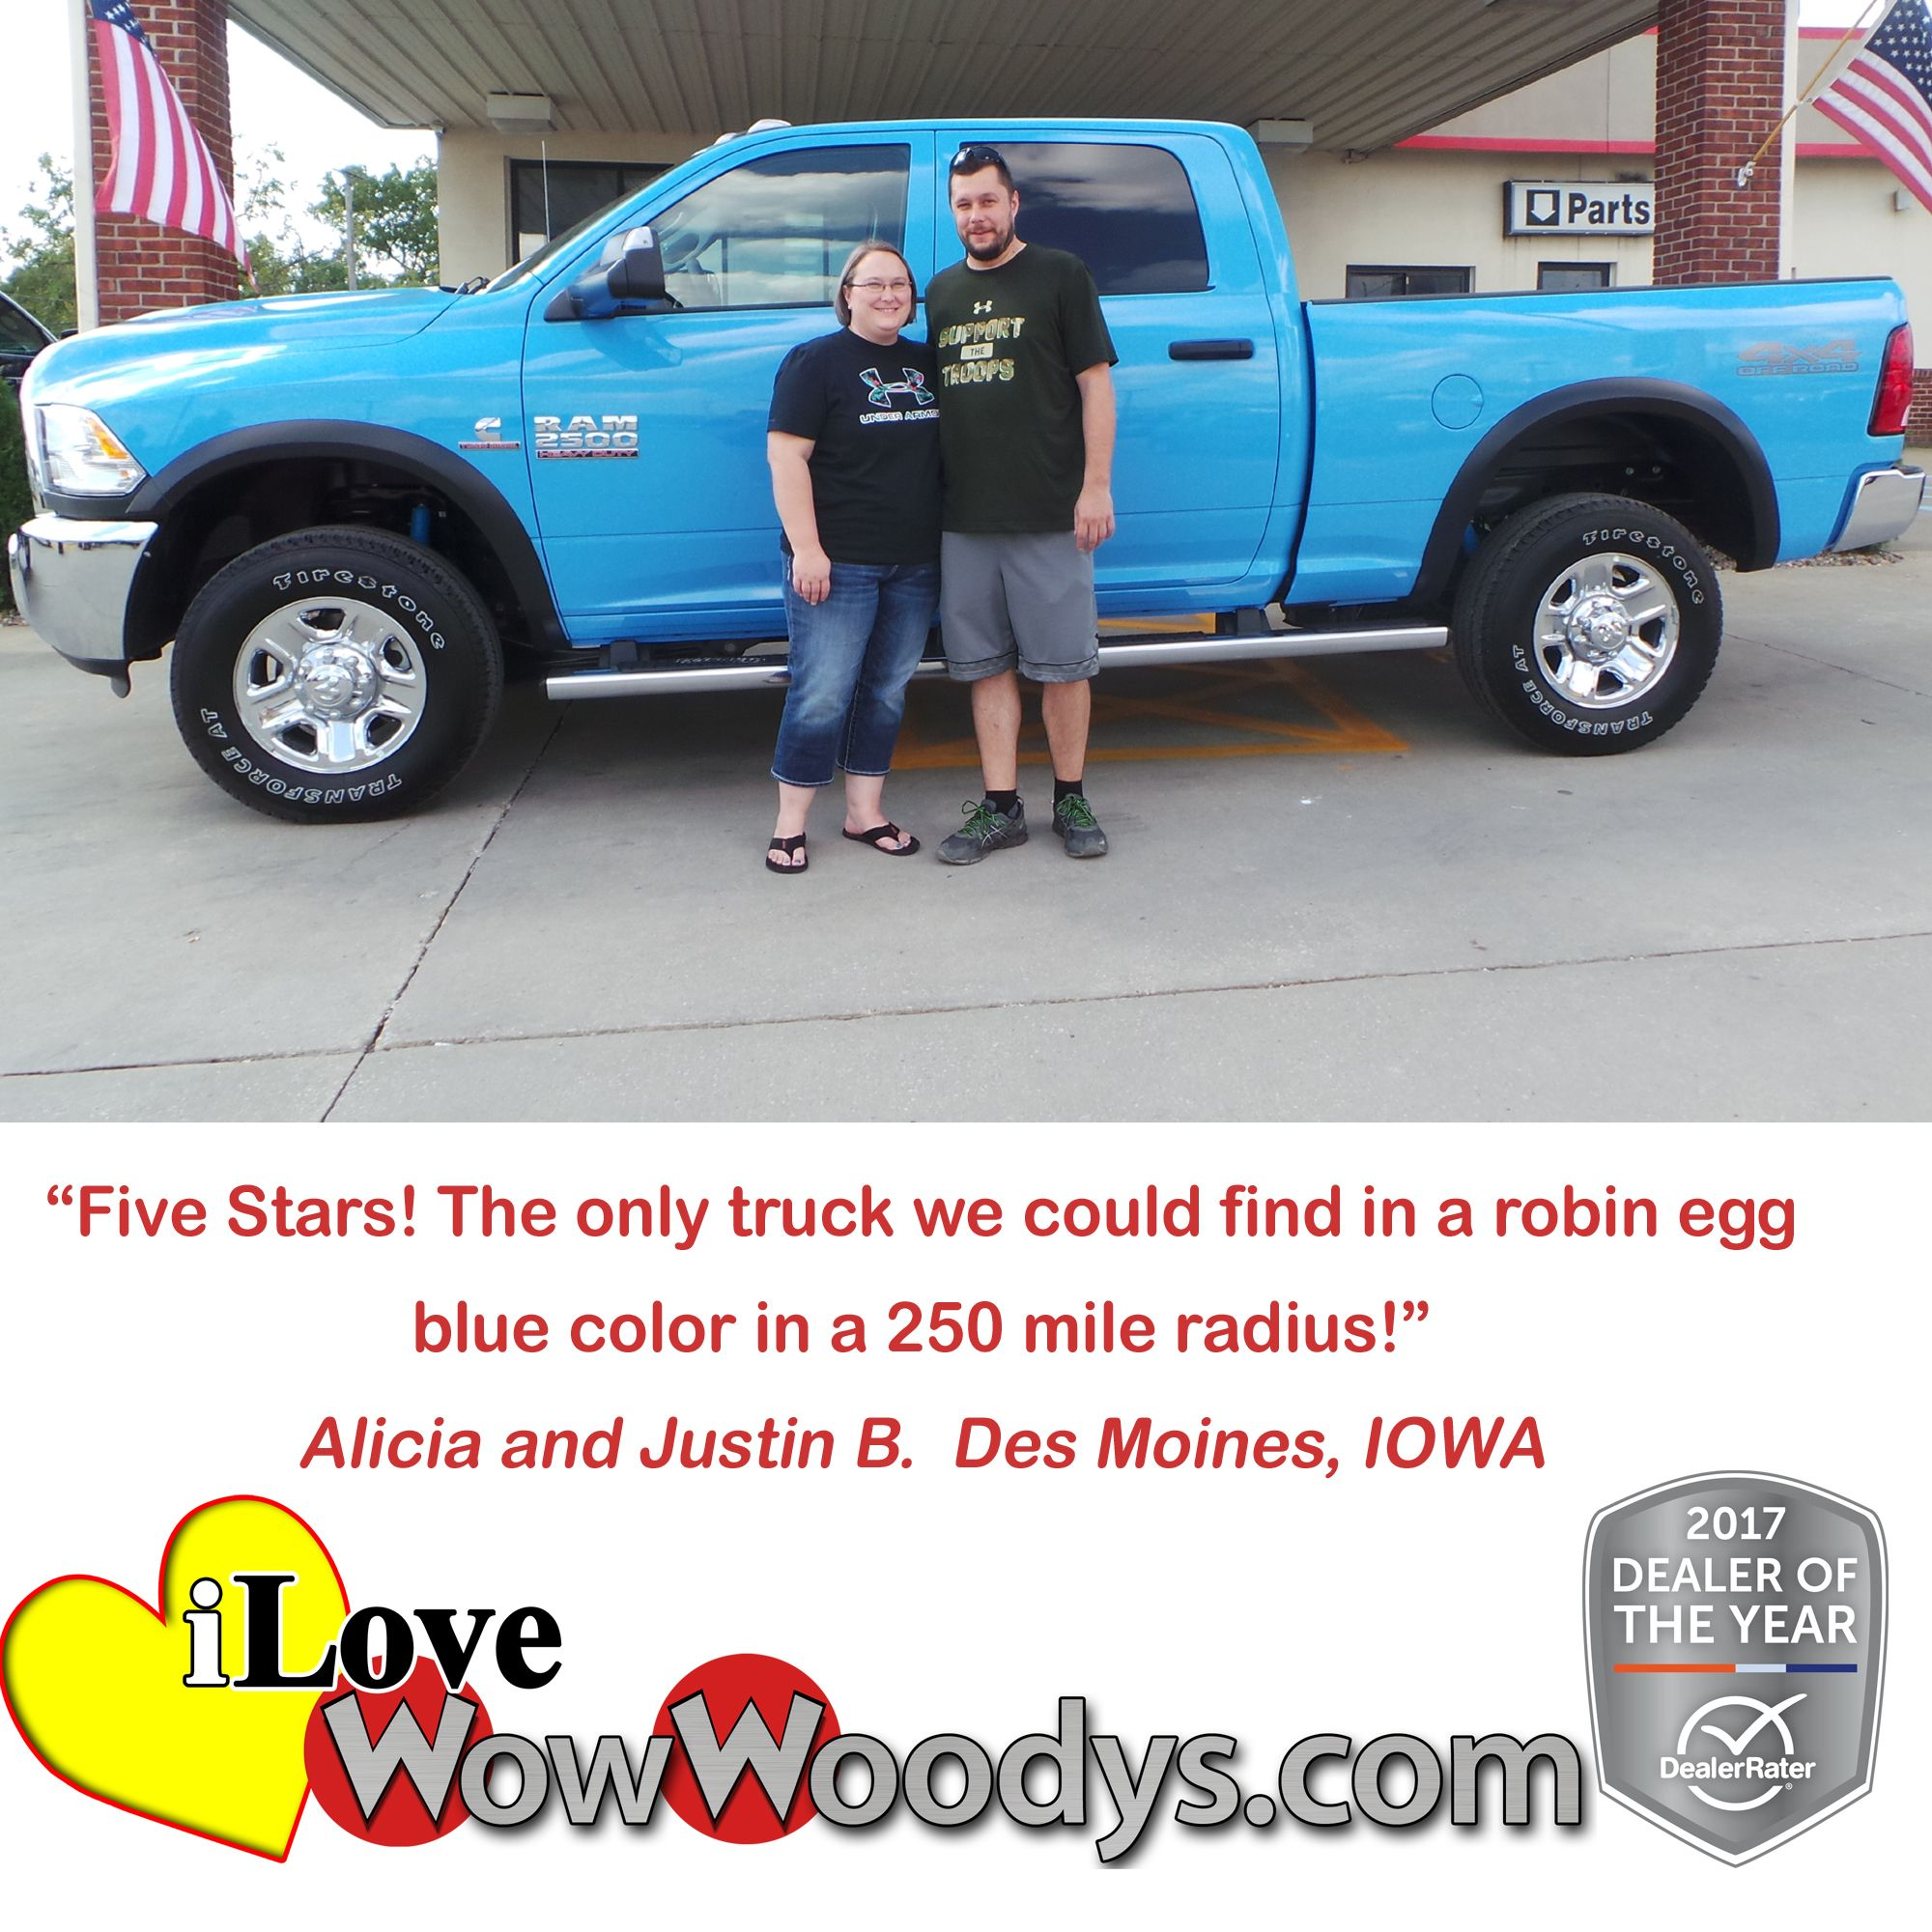 New Chrysler Dodge Ram Jeep Dealers Kansas City Chillicothe Mo Woody S Automotive Group Jeep Dealer Automotive Group Robins Egg Blue